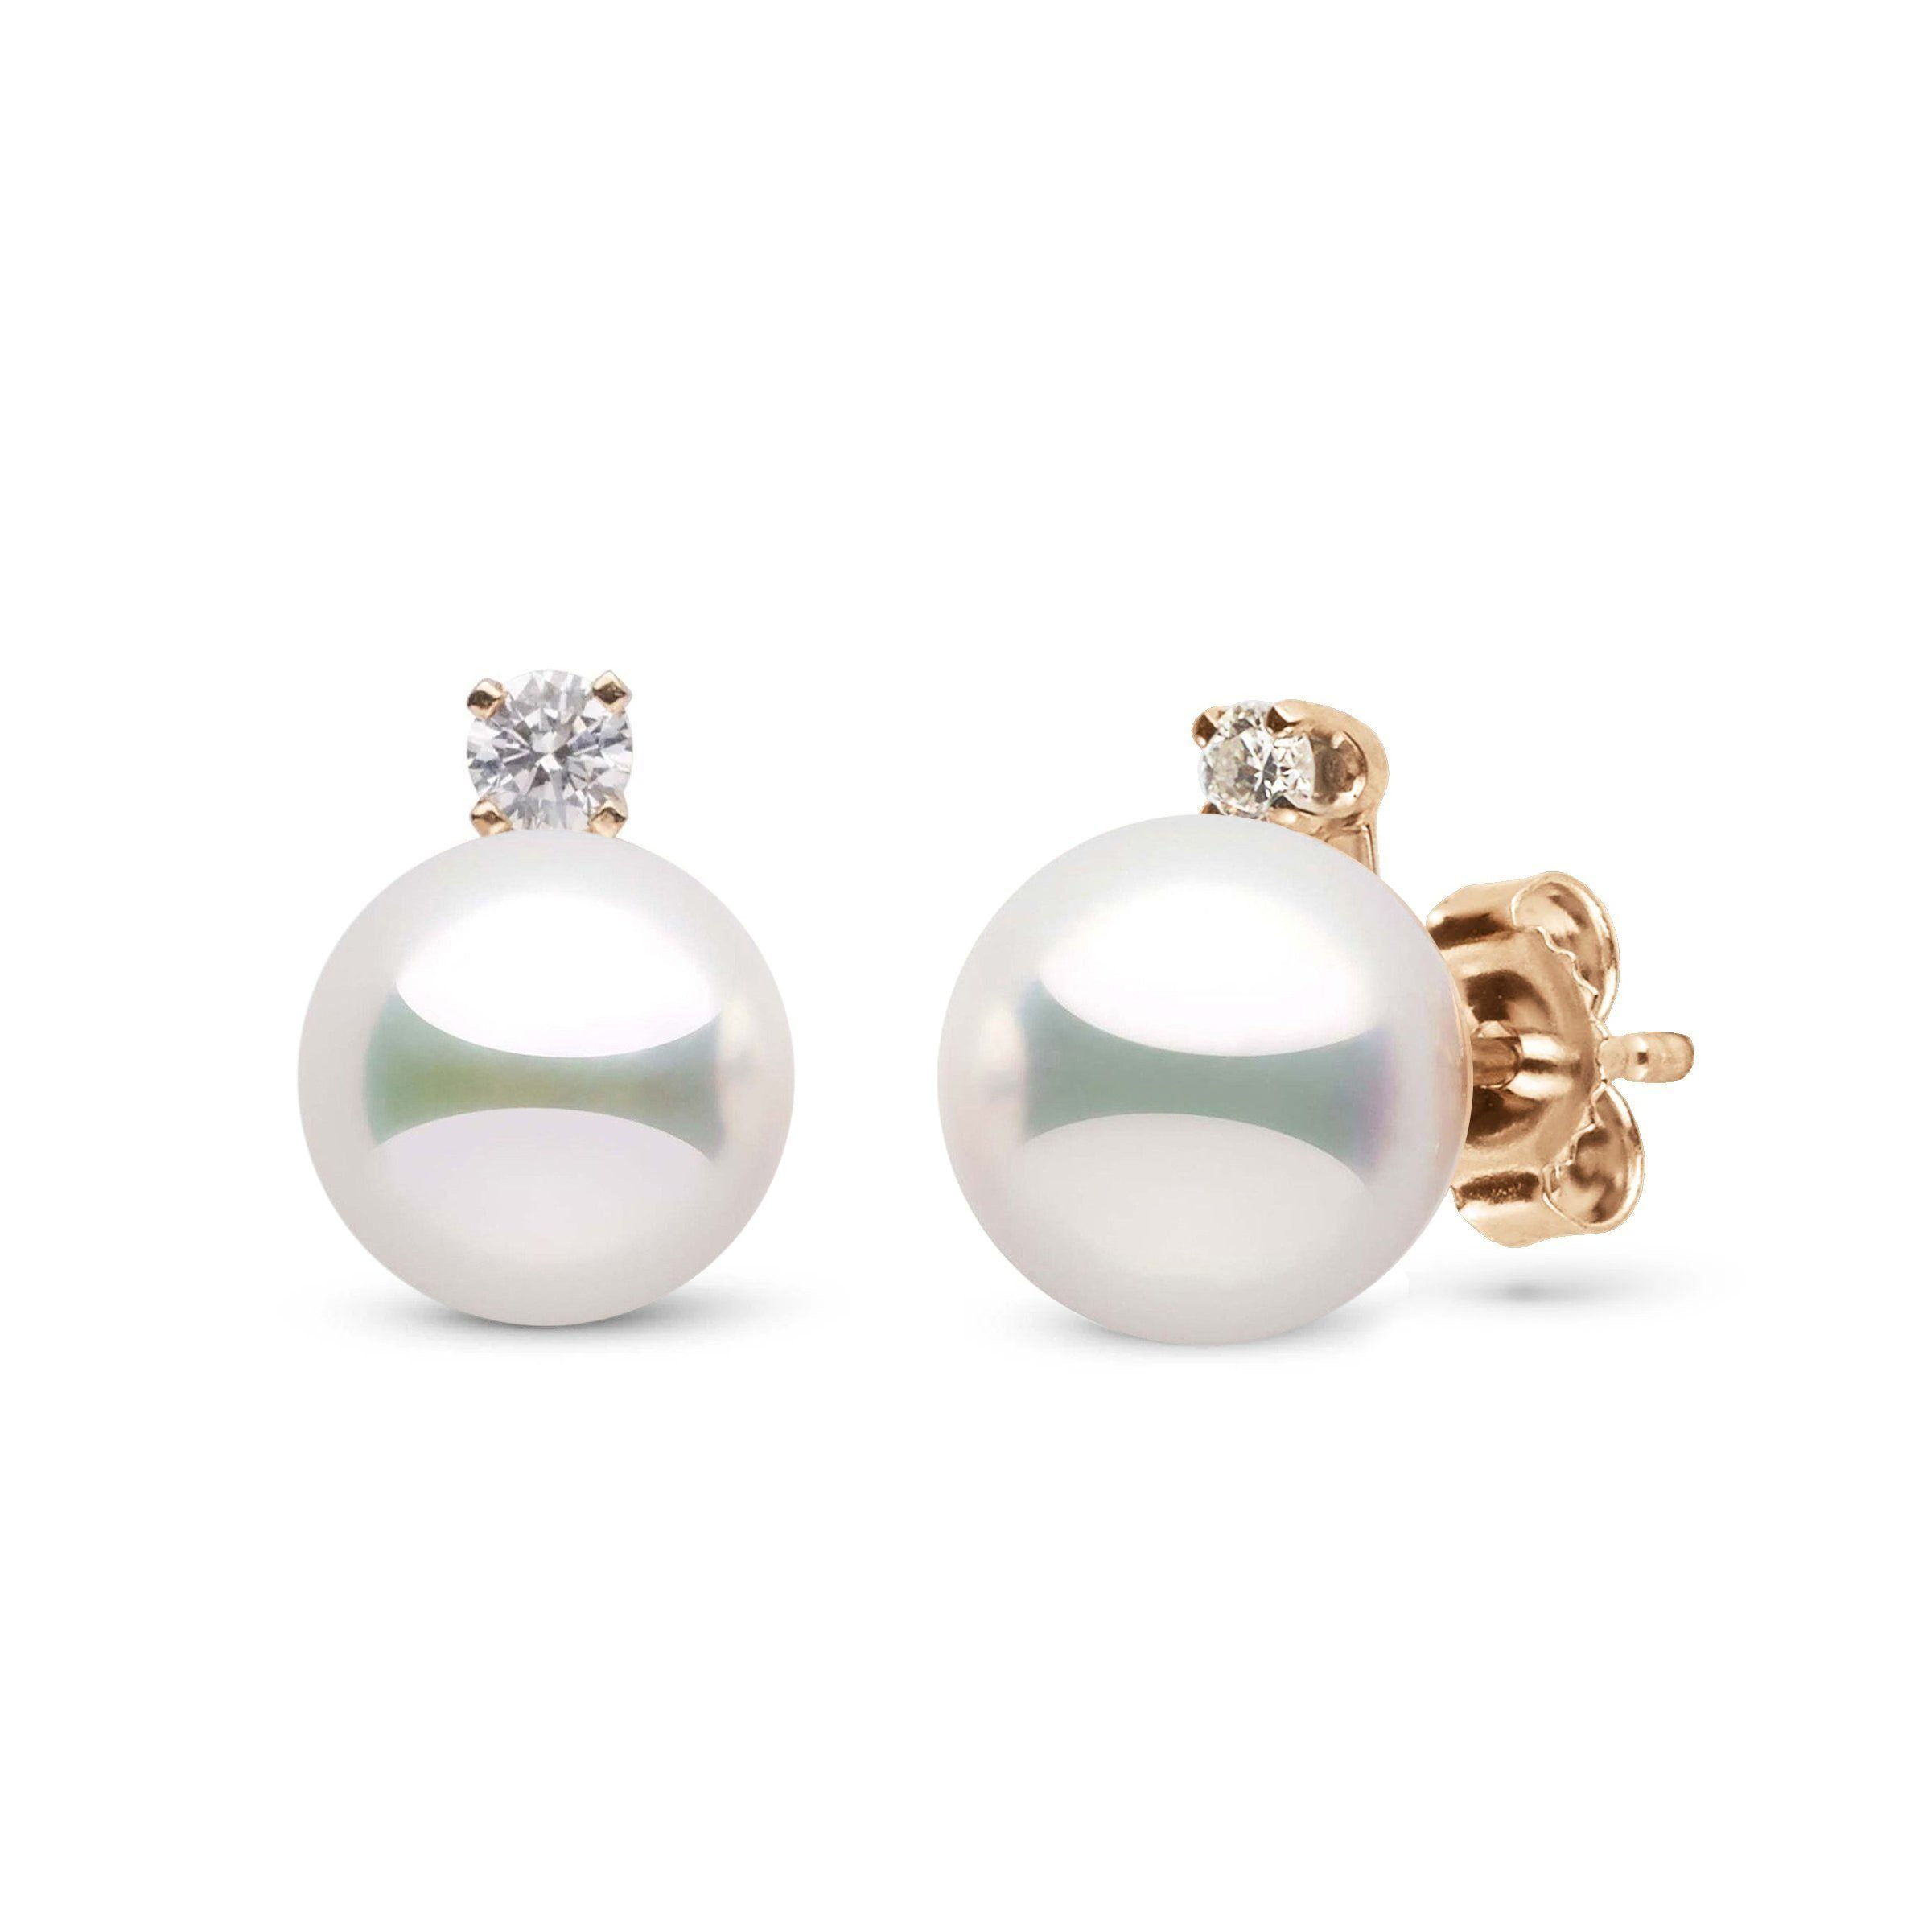 Starlight Collection 8.0-8.5 mm Natural White Hanadama Pearl and Diamond Stud Earrings